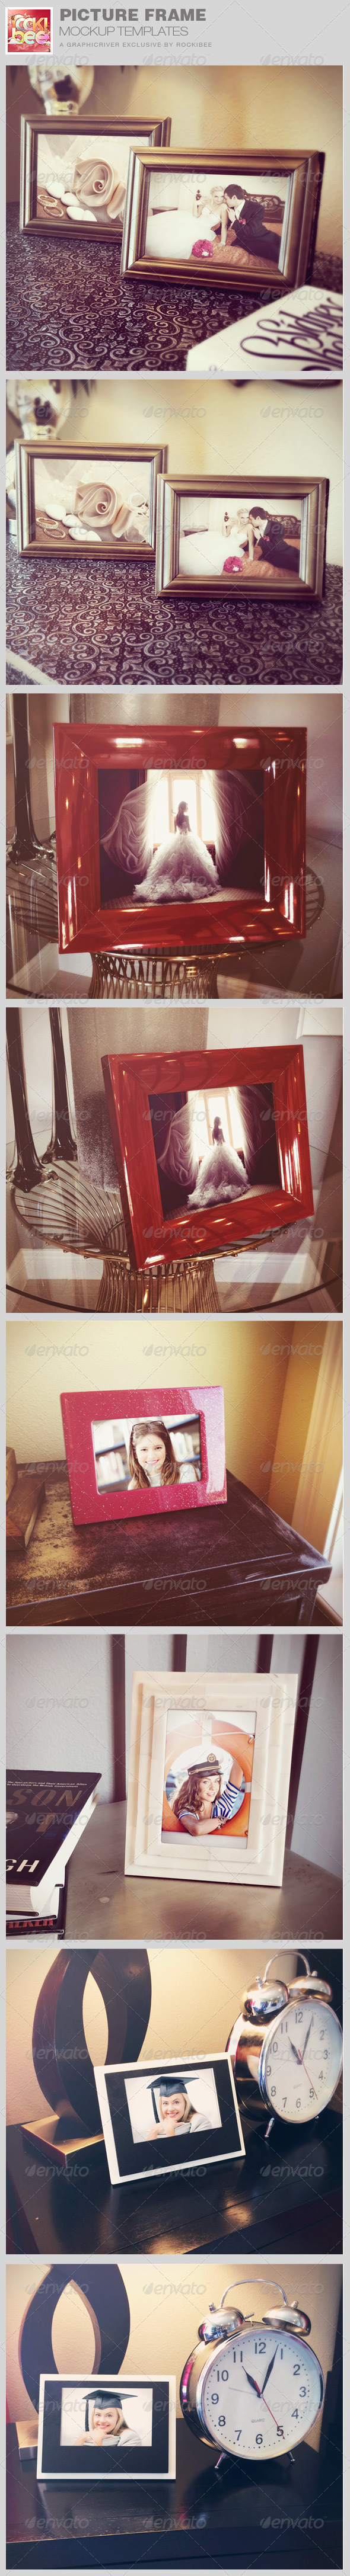 Picture Frame Mockup Templates - Photo Templates Graphics